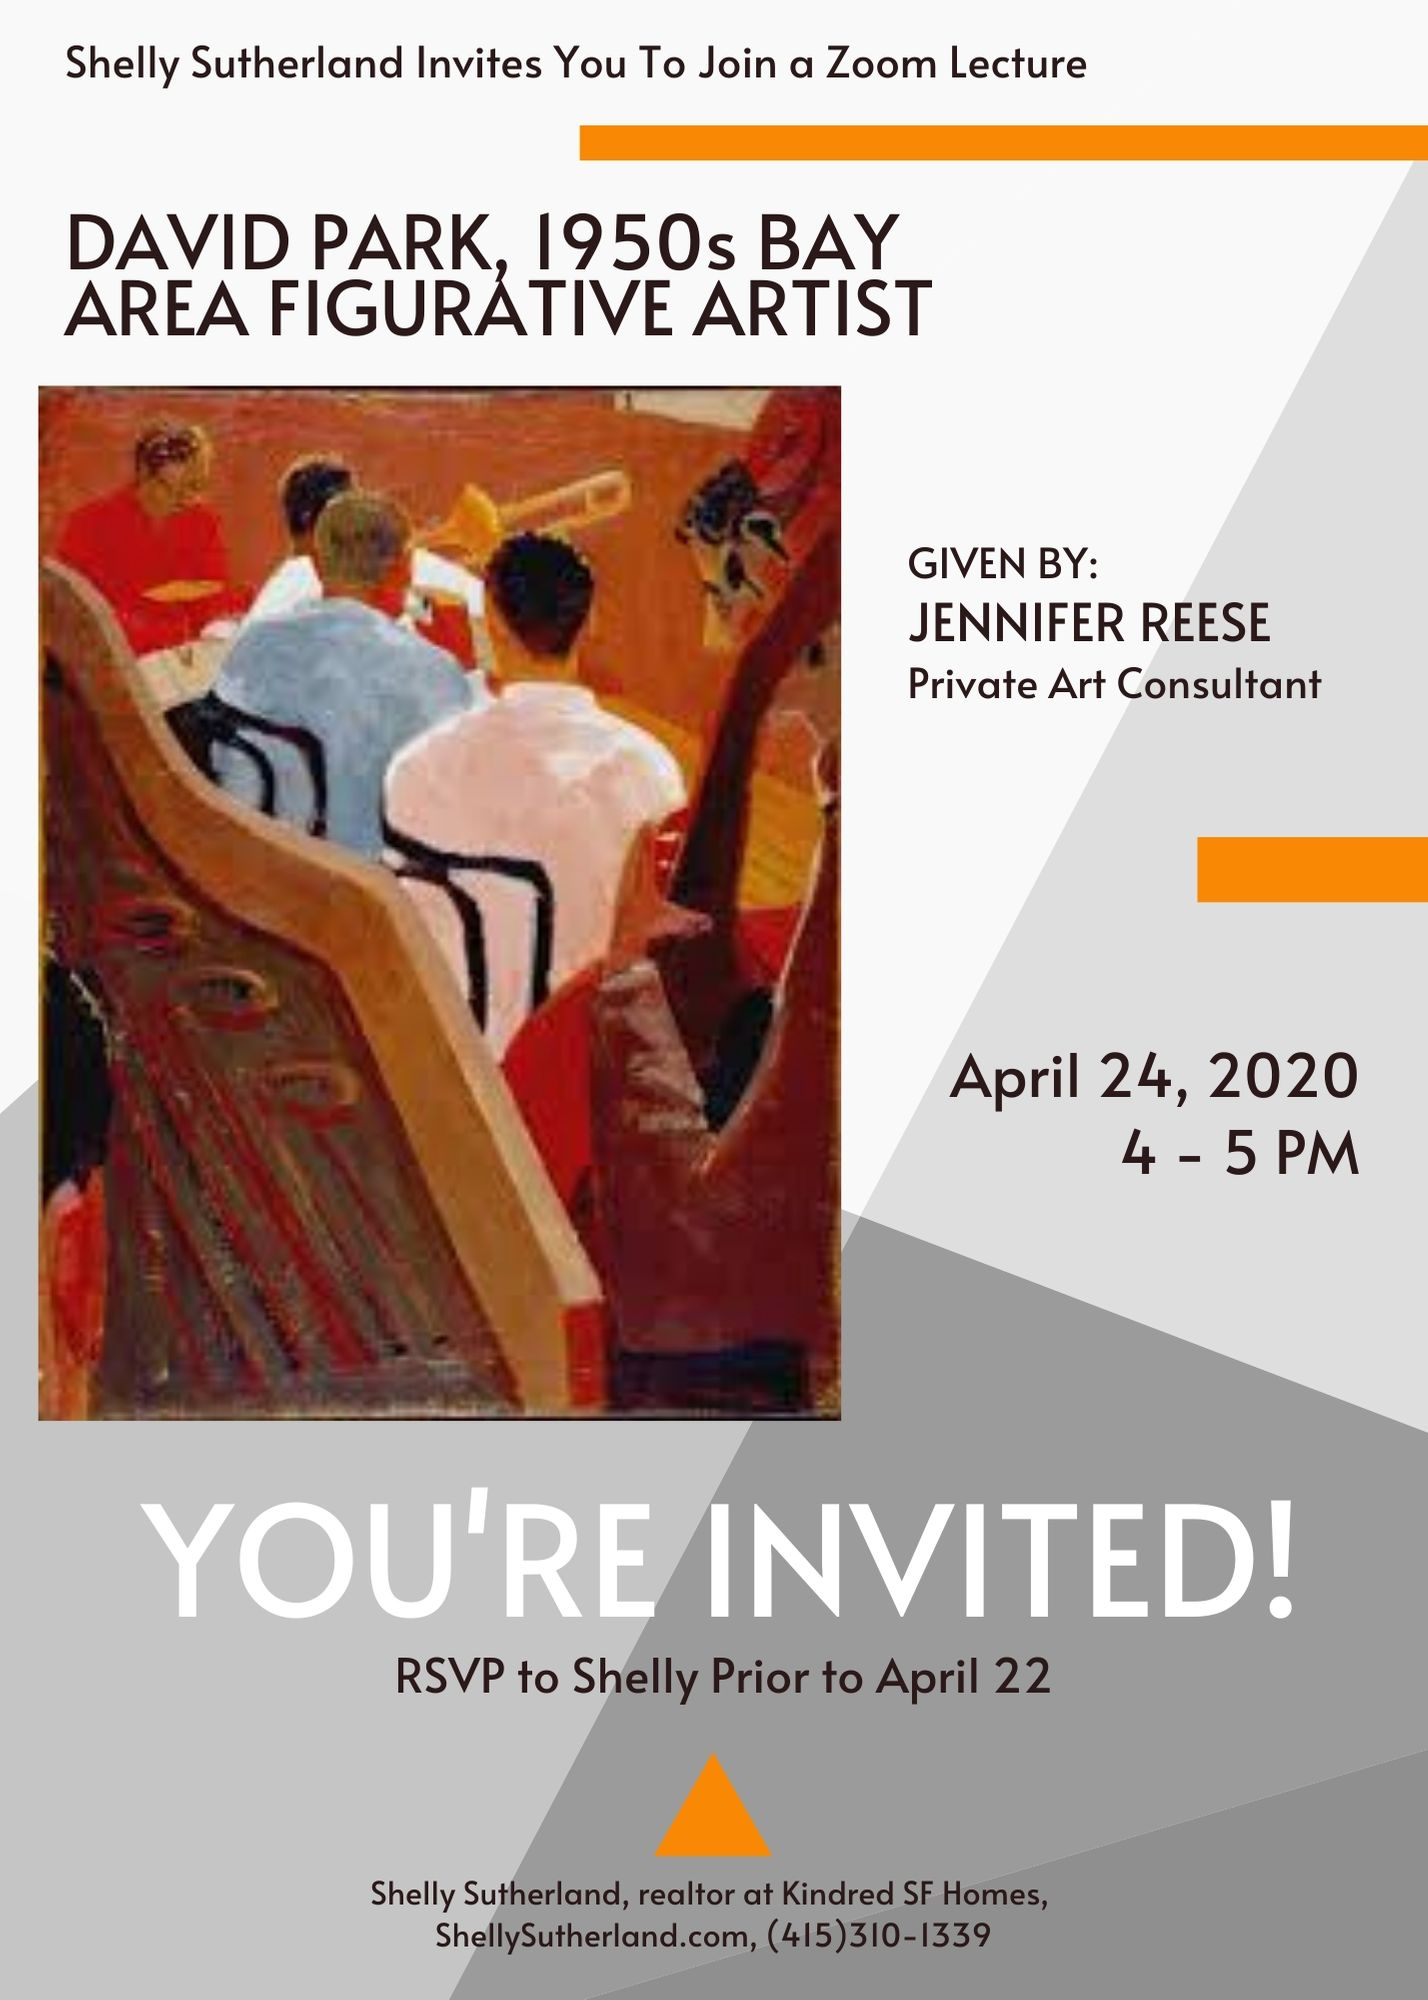 Invitation to join a lecture on David Park, 1950s Bay Area figurative artist